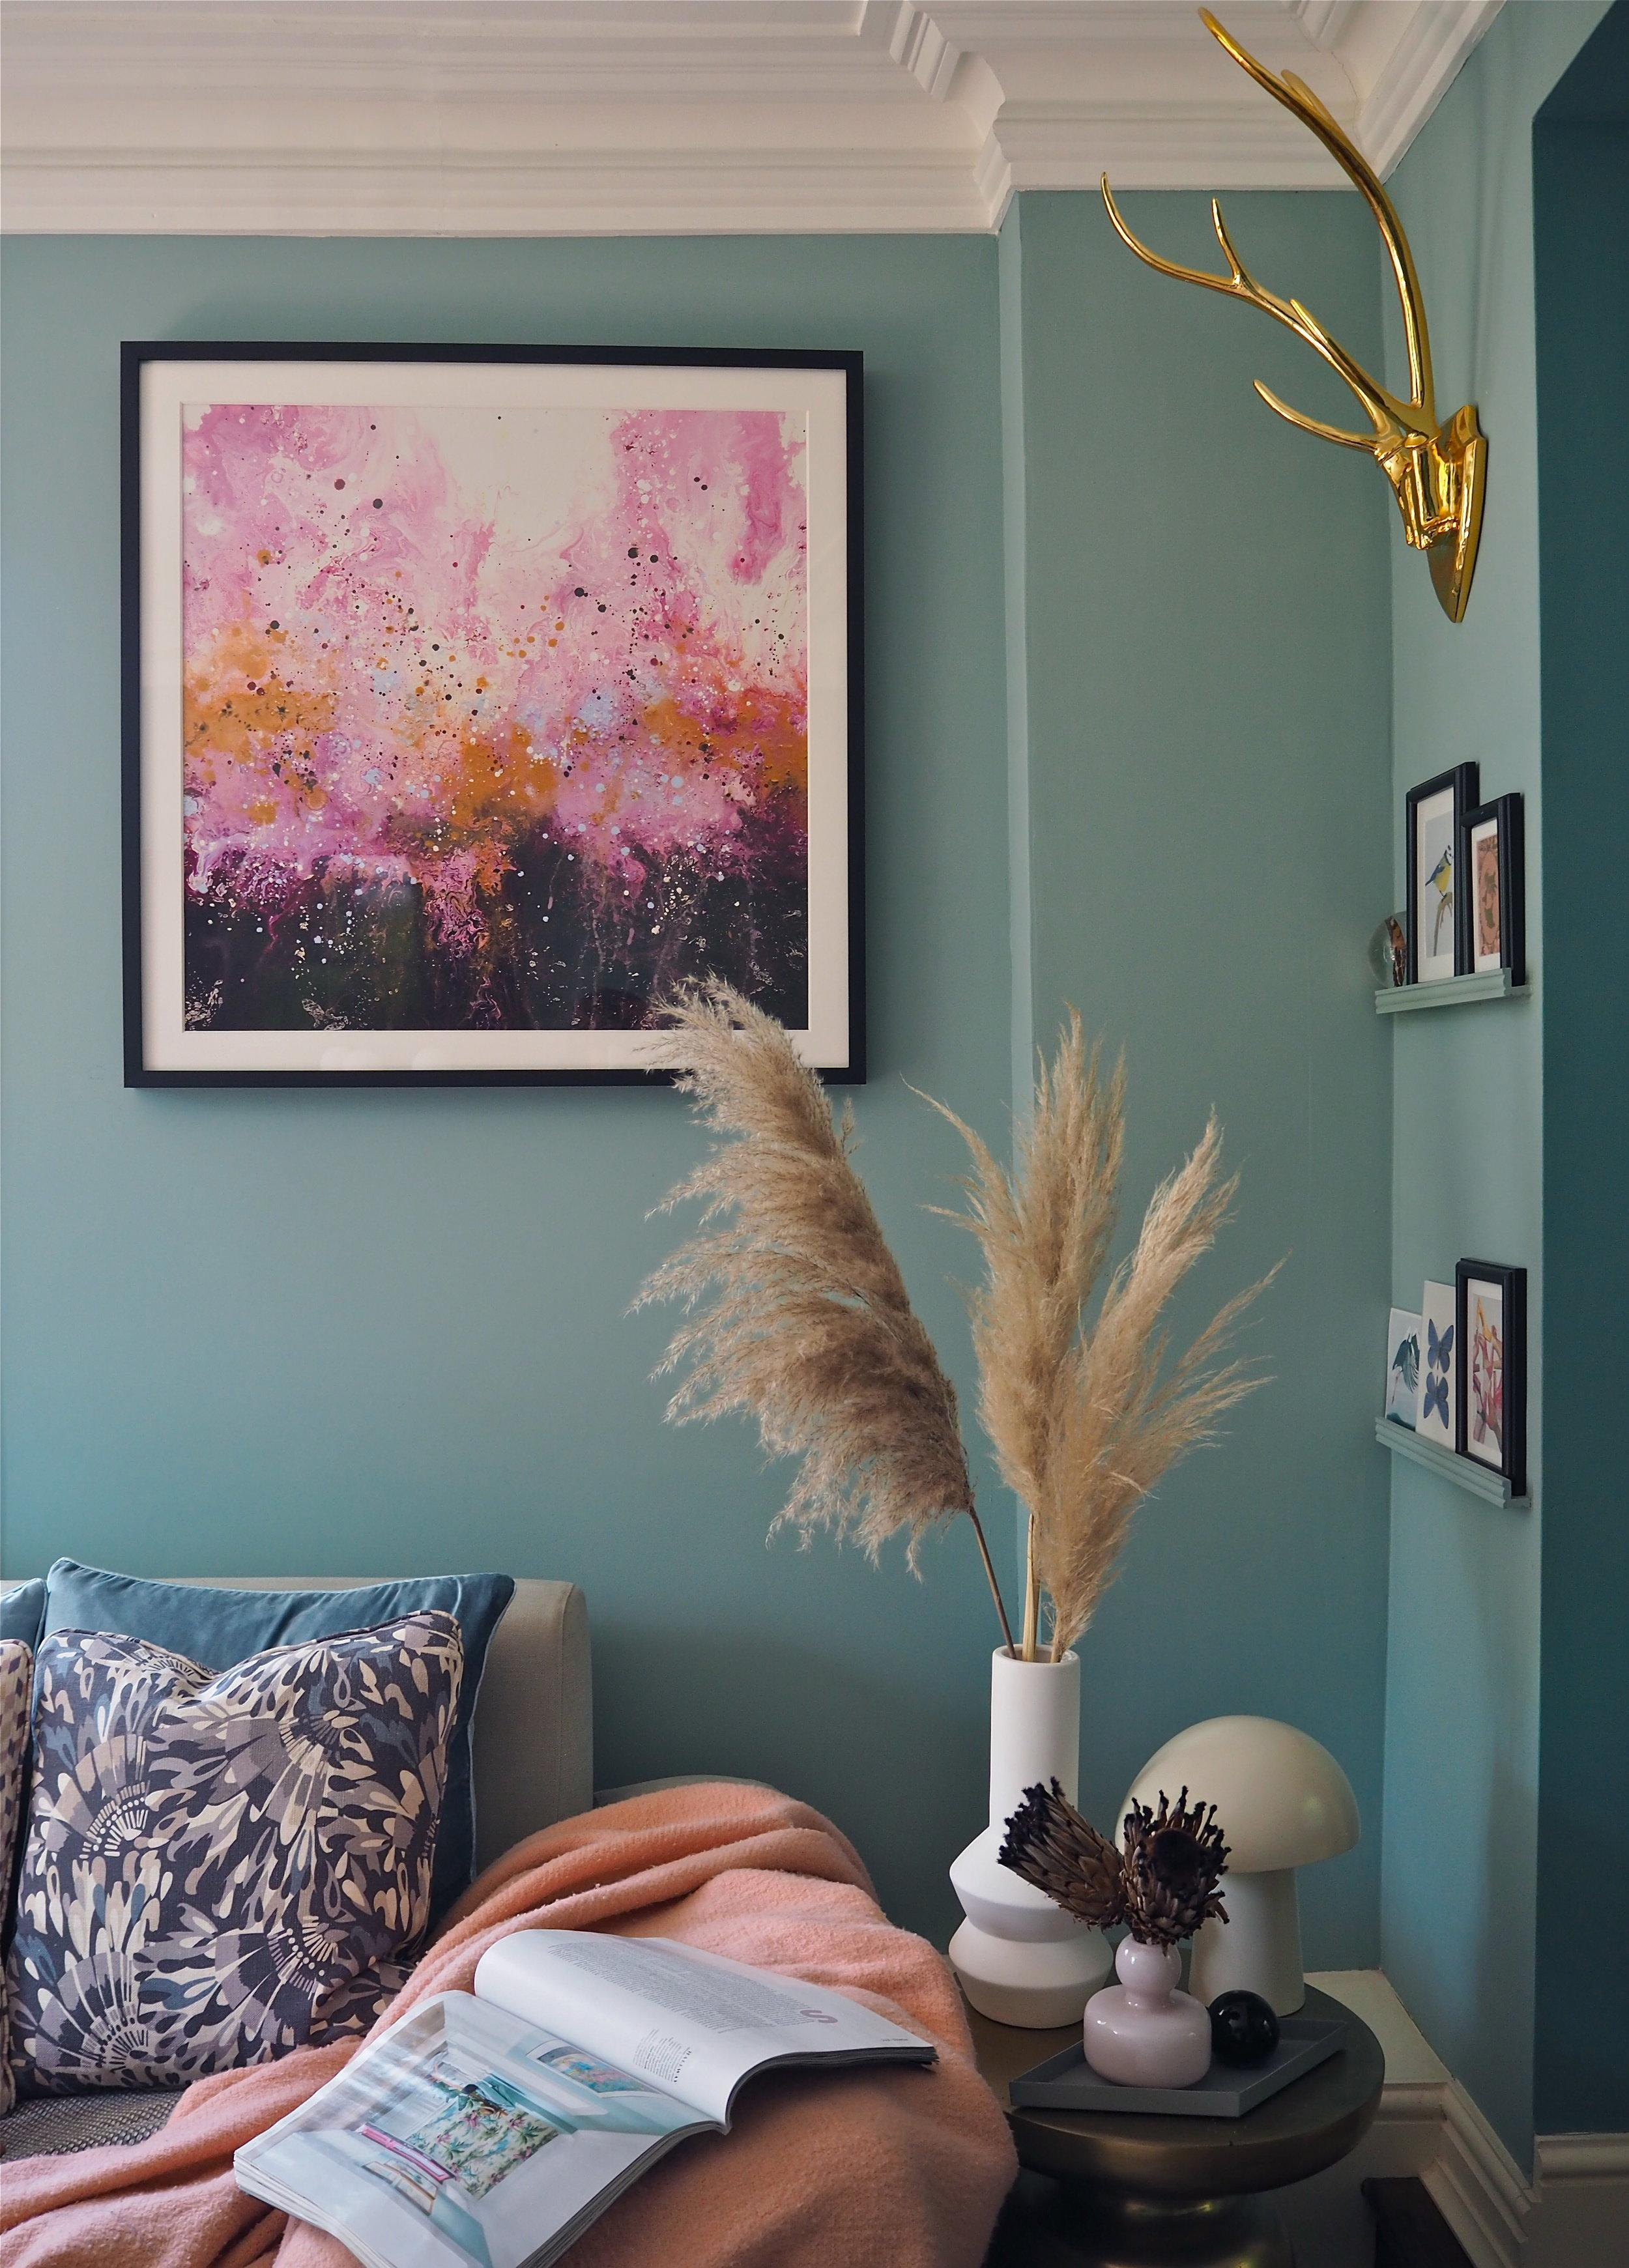 How to add colour into your home using art